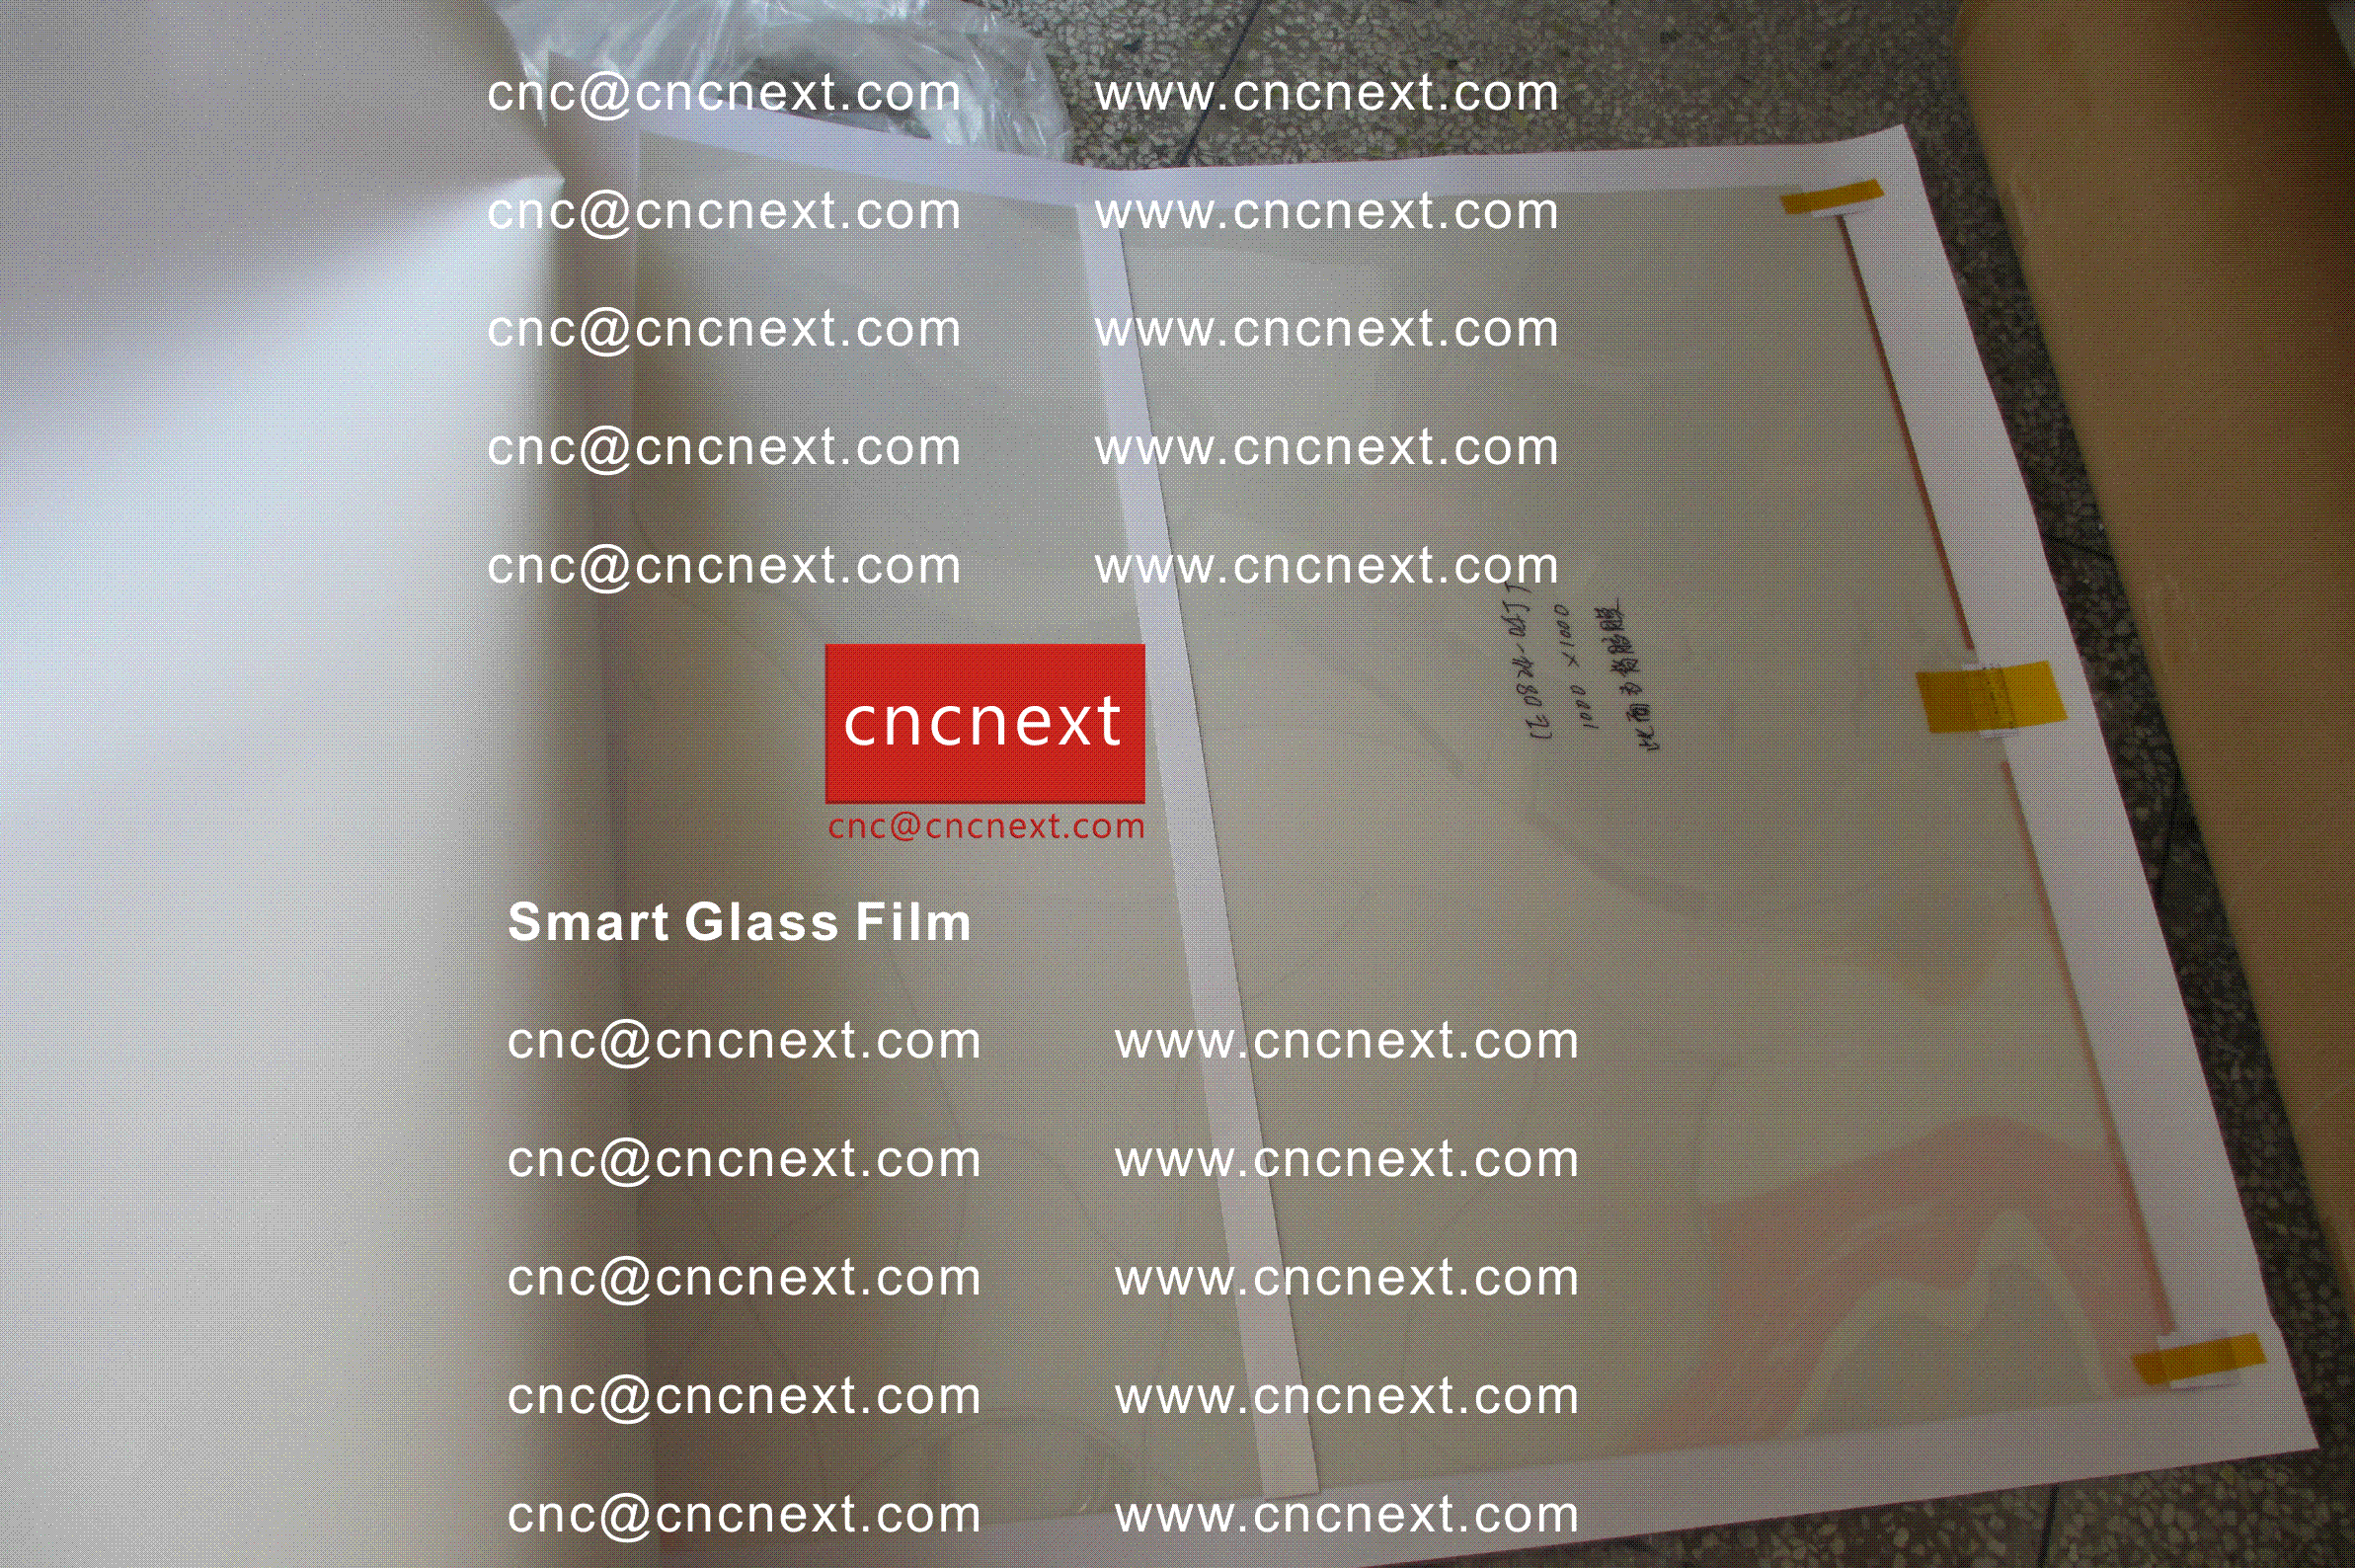 003 Smart Glass Film